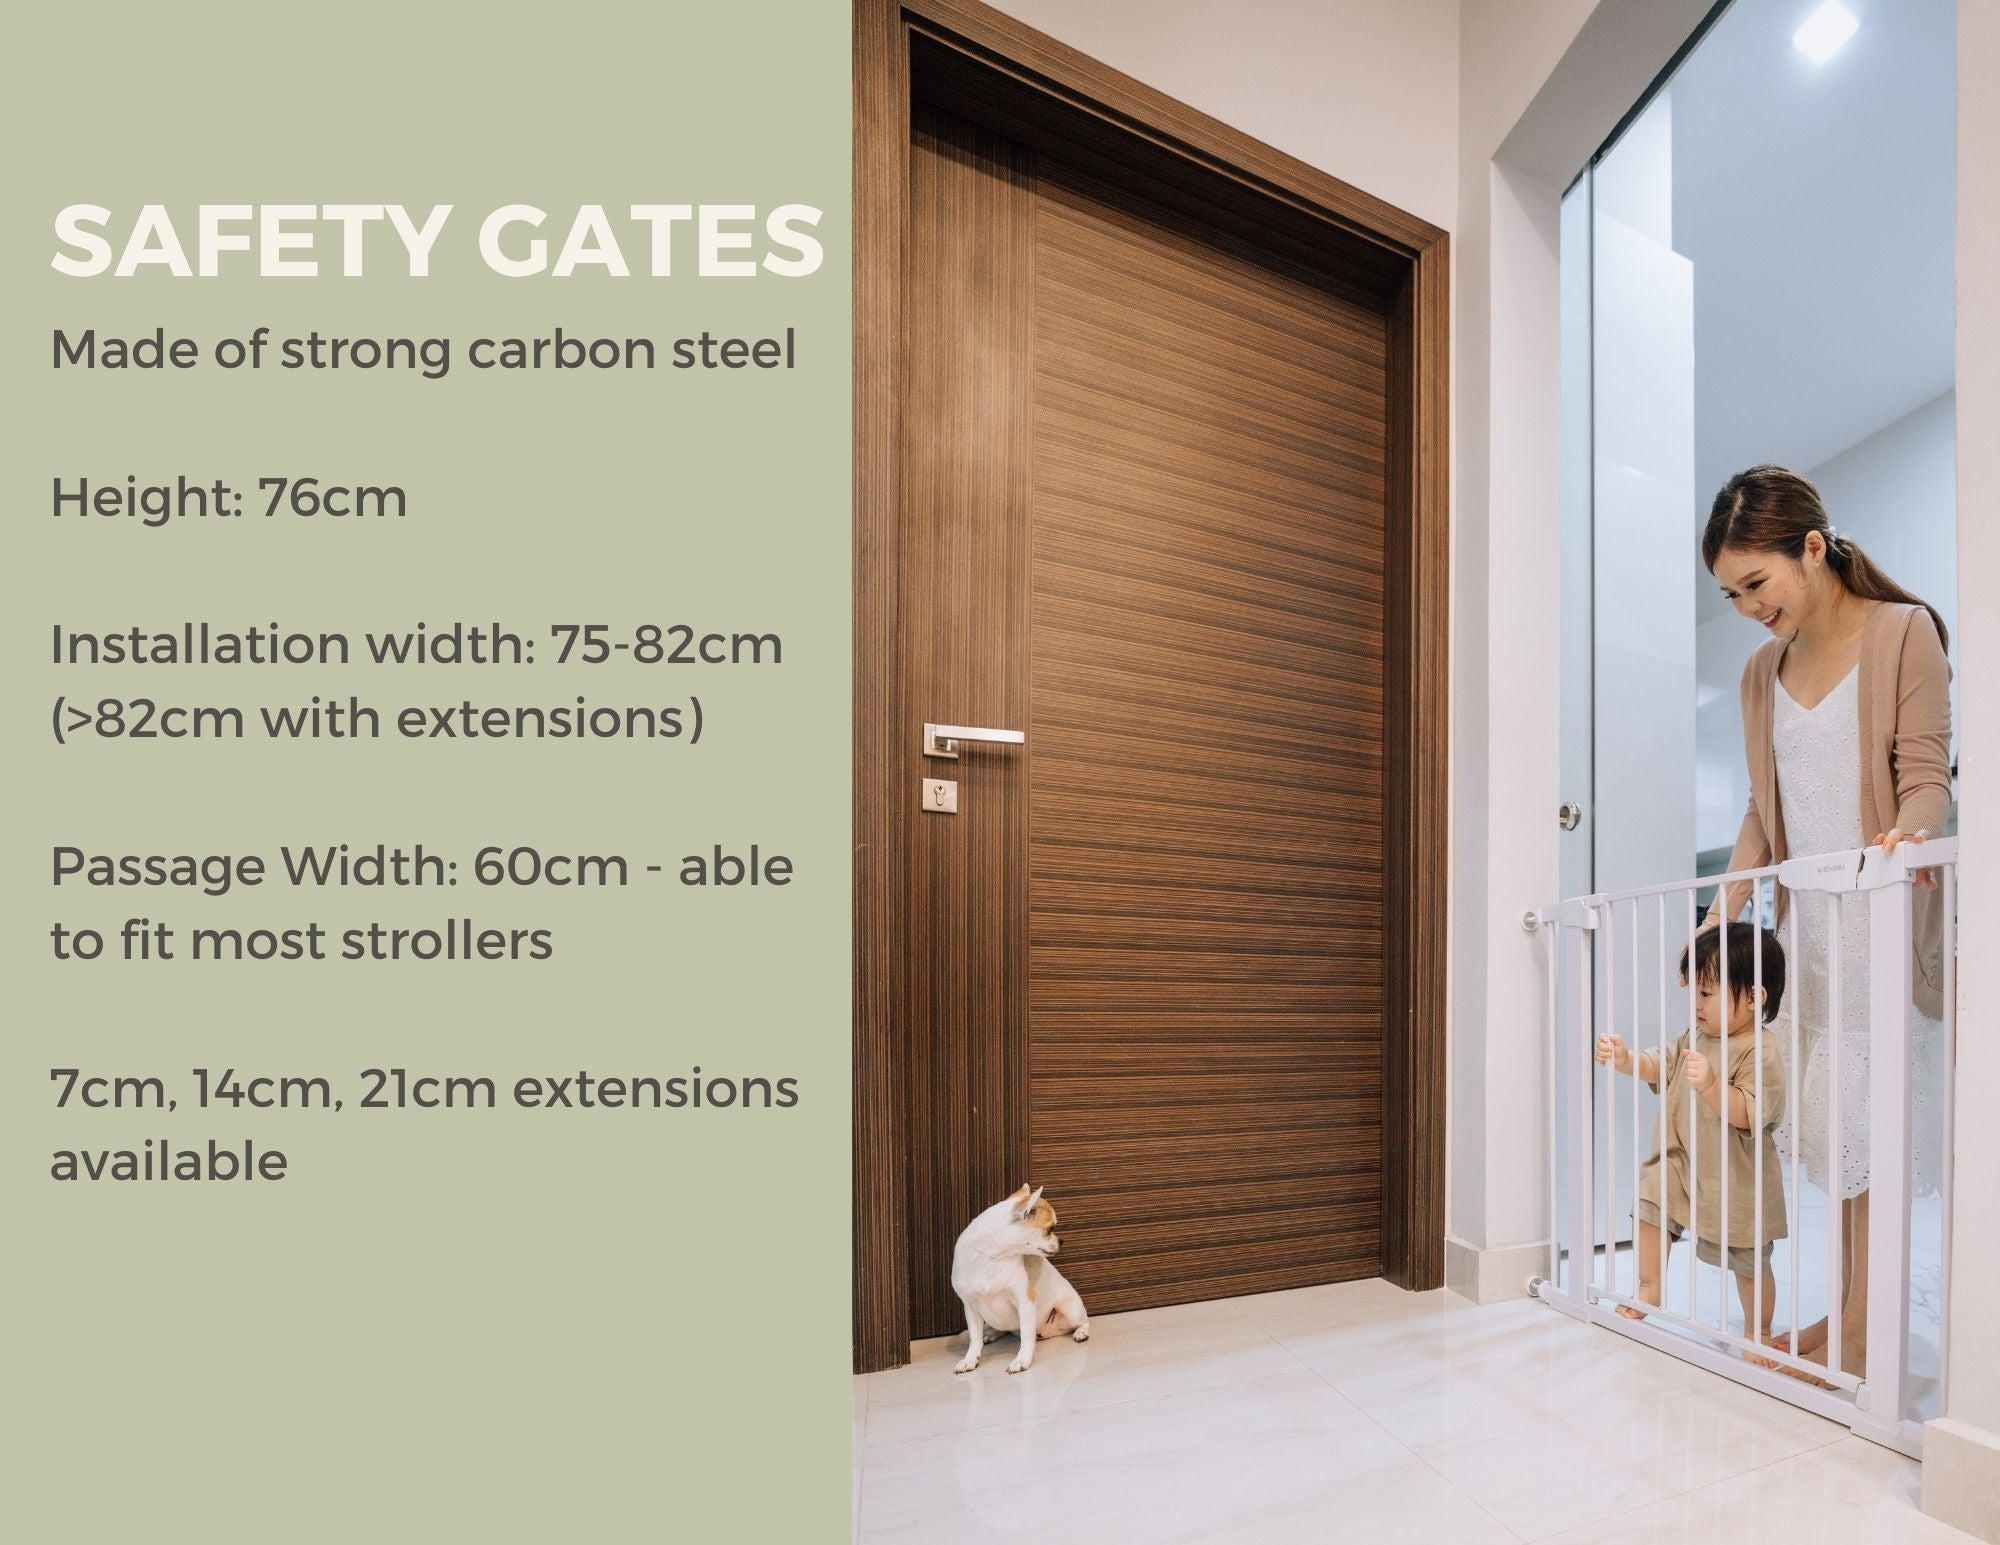 Best Safety Gates for Baby in Singapore